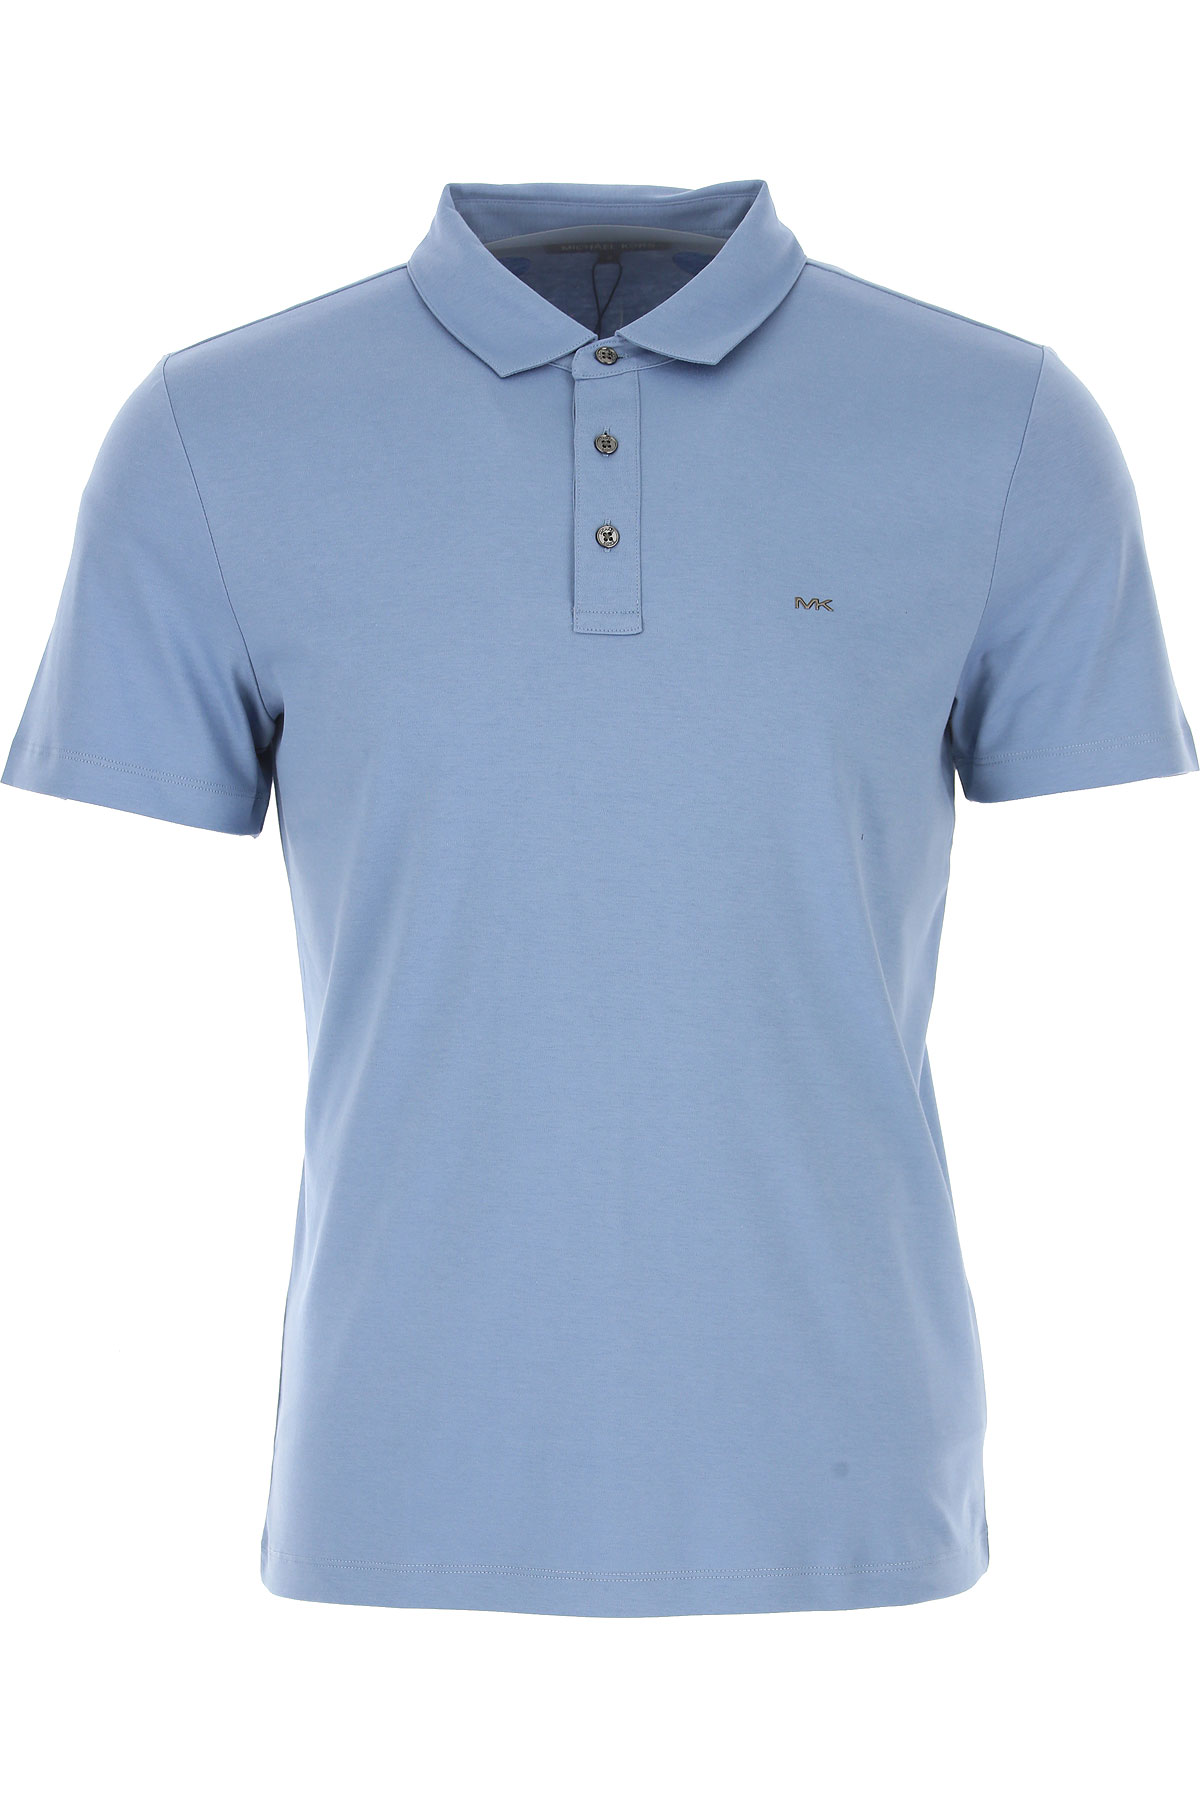 Michael Kors Polo Shirt for Men On Sale in Outlet, Blue Grey, Cotton, 2019, M S